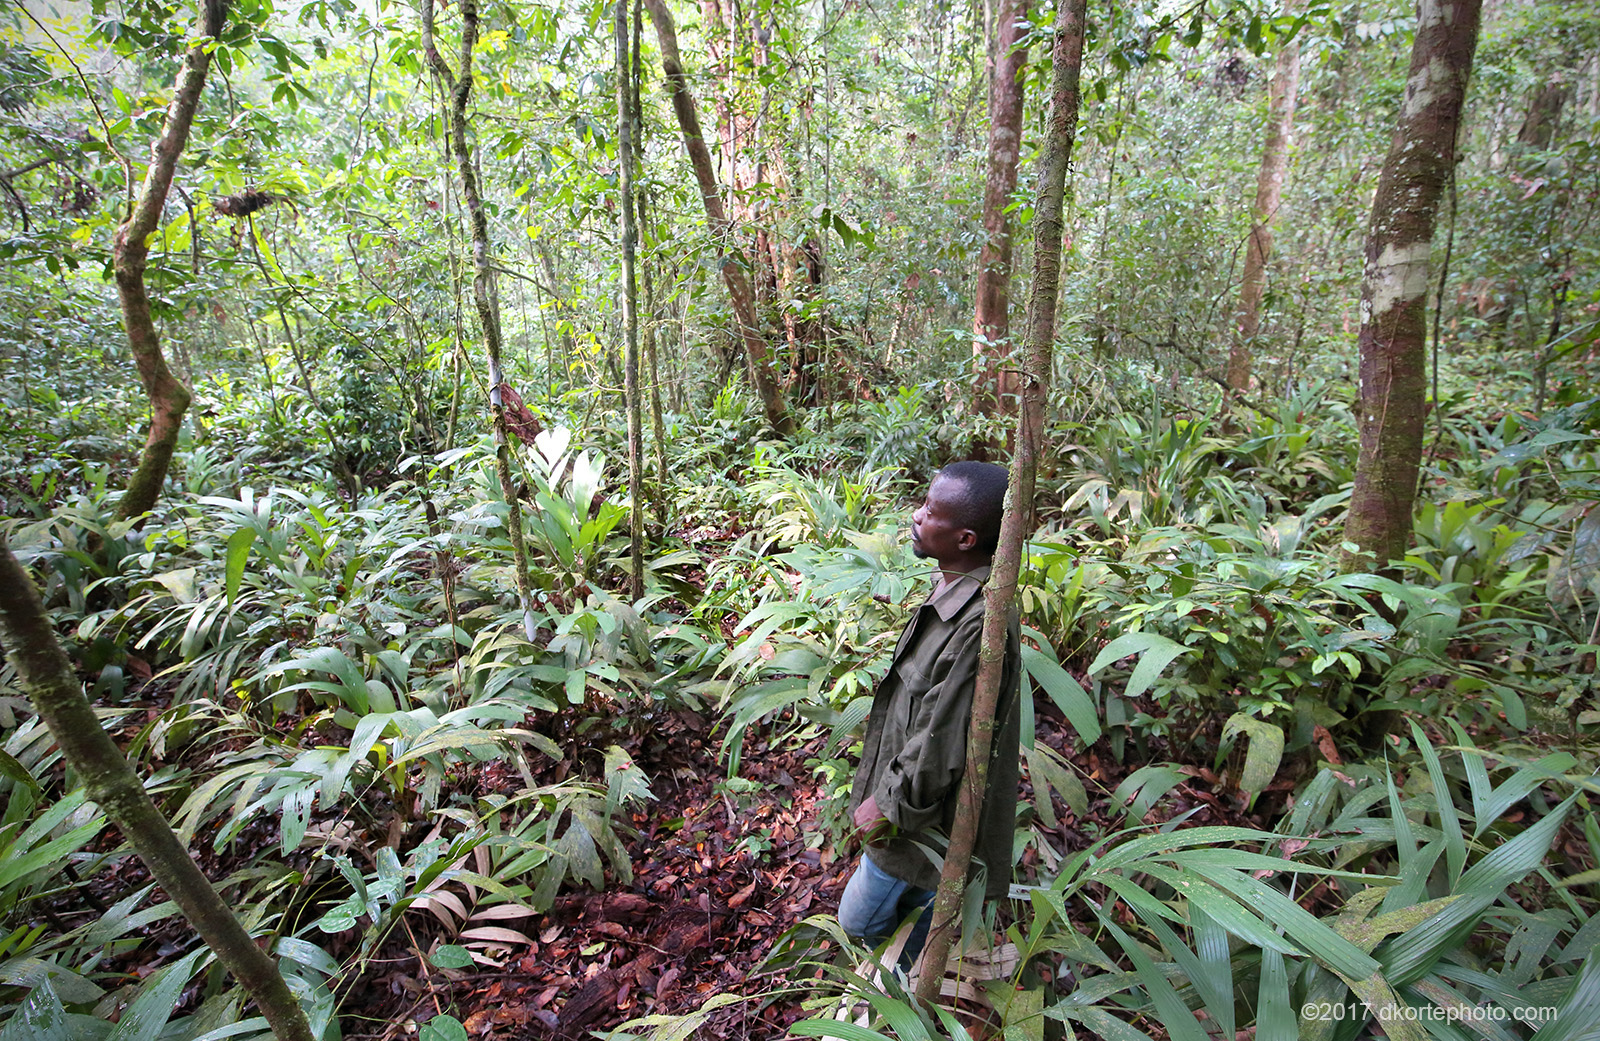 Kollie, one of our guides, listens to the forest at the end of a rain.